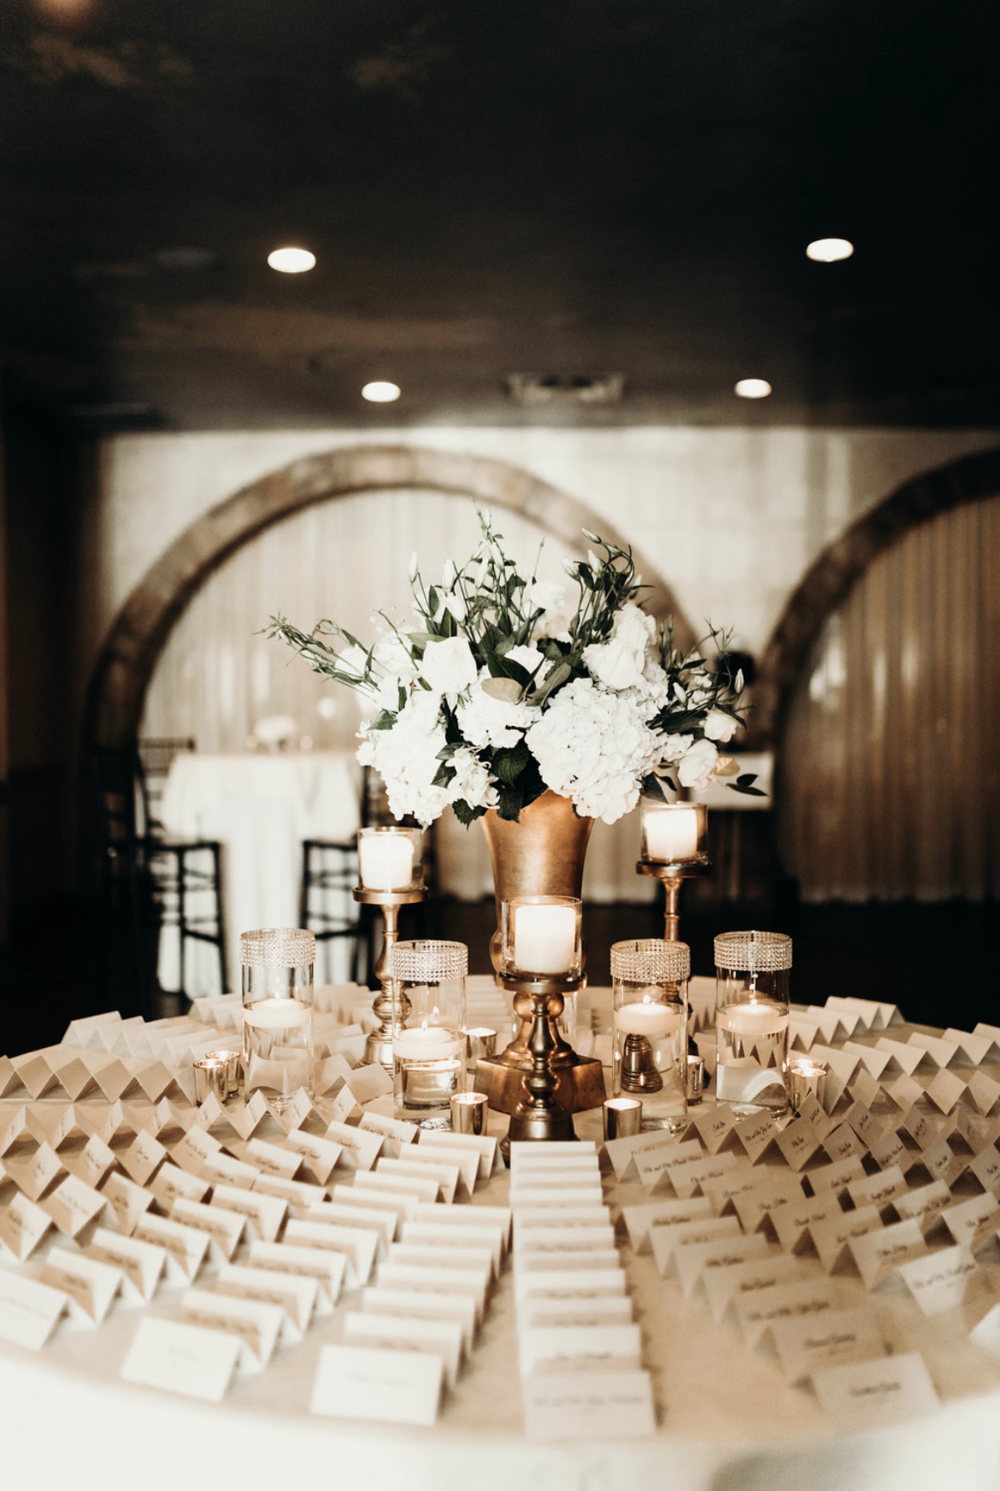 Valerie-and-TJ-McConnell-Wedding-Coordination-by-Cassandra-Clair-Event-Prep-Pittsburgh-Wedding-52.png